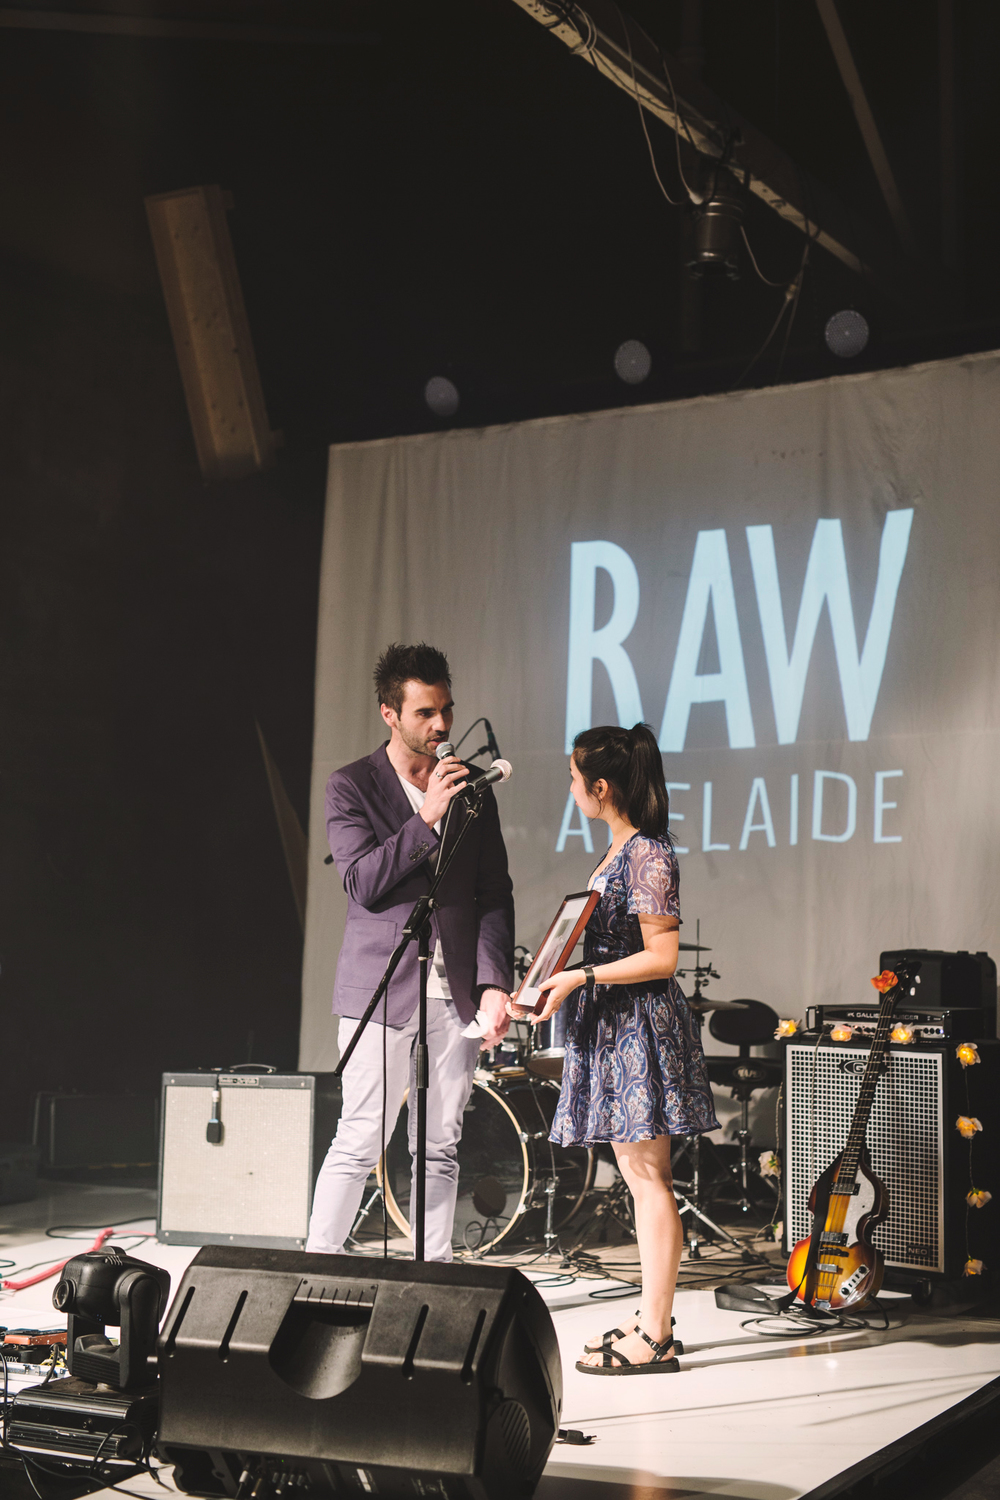 RAW-ADELAIDE_PRESENTS_MERGE_EVENT_161015_ARPHOTO_1210.jpg